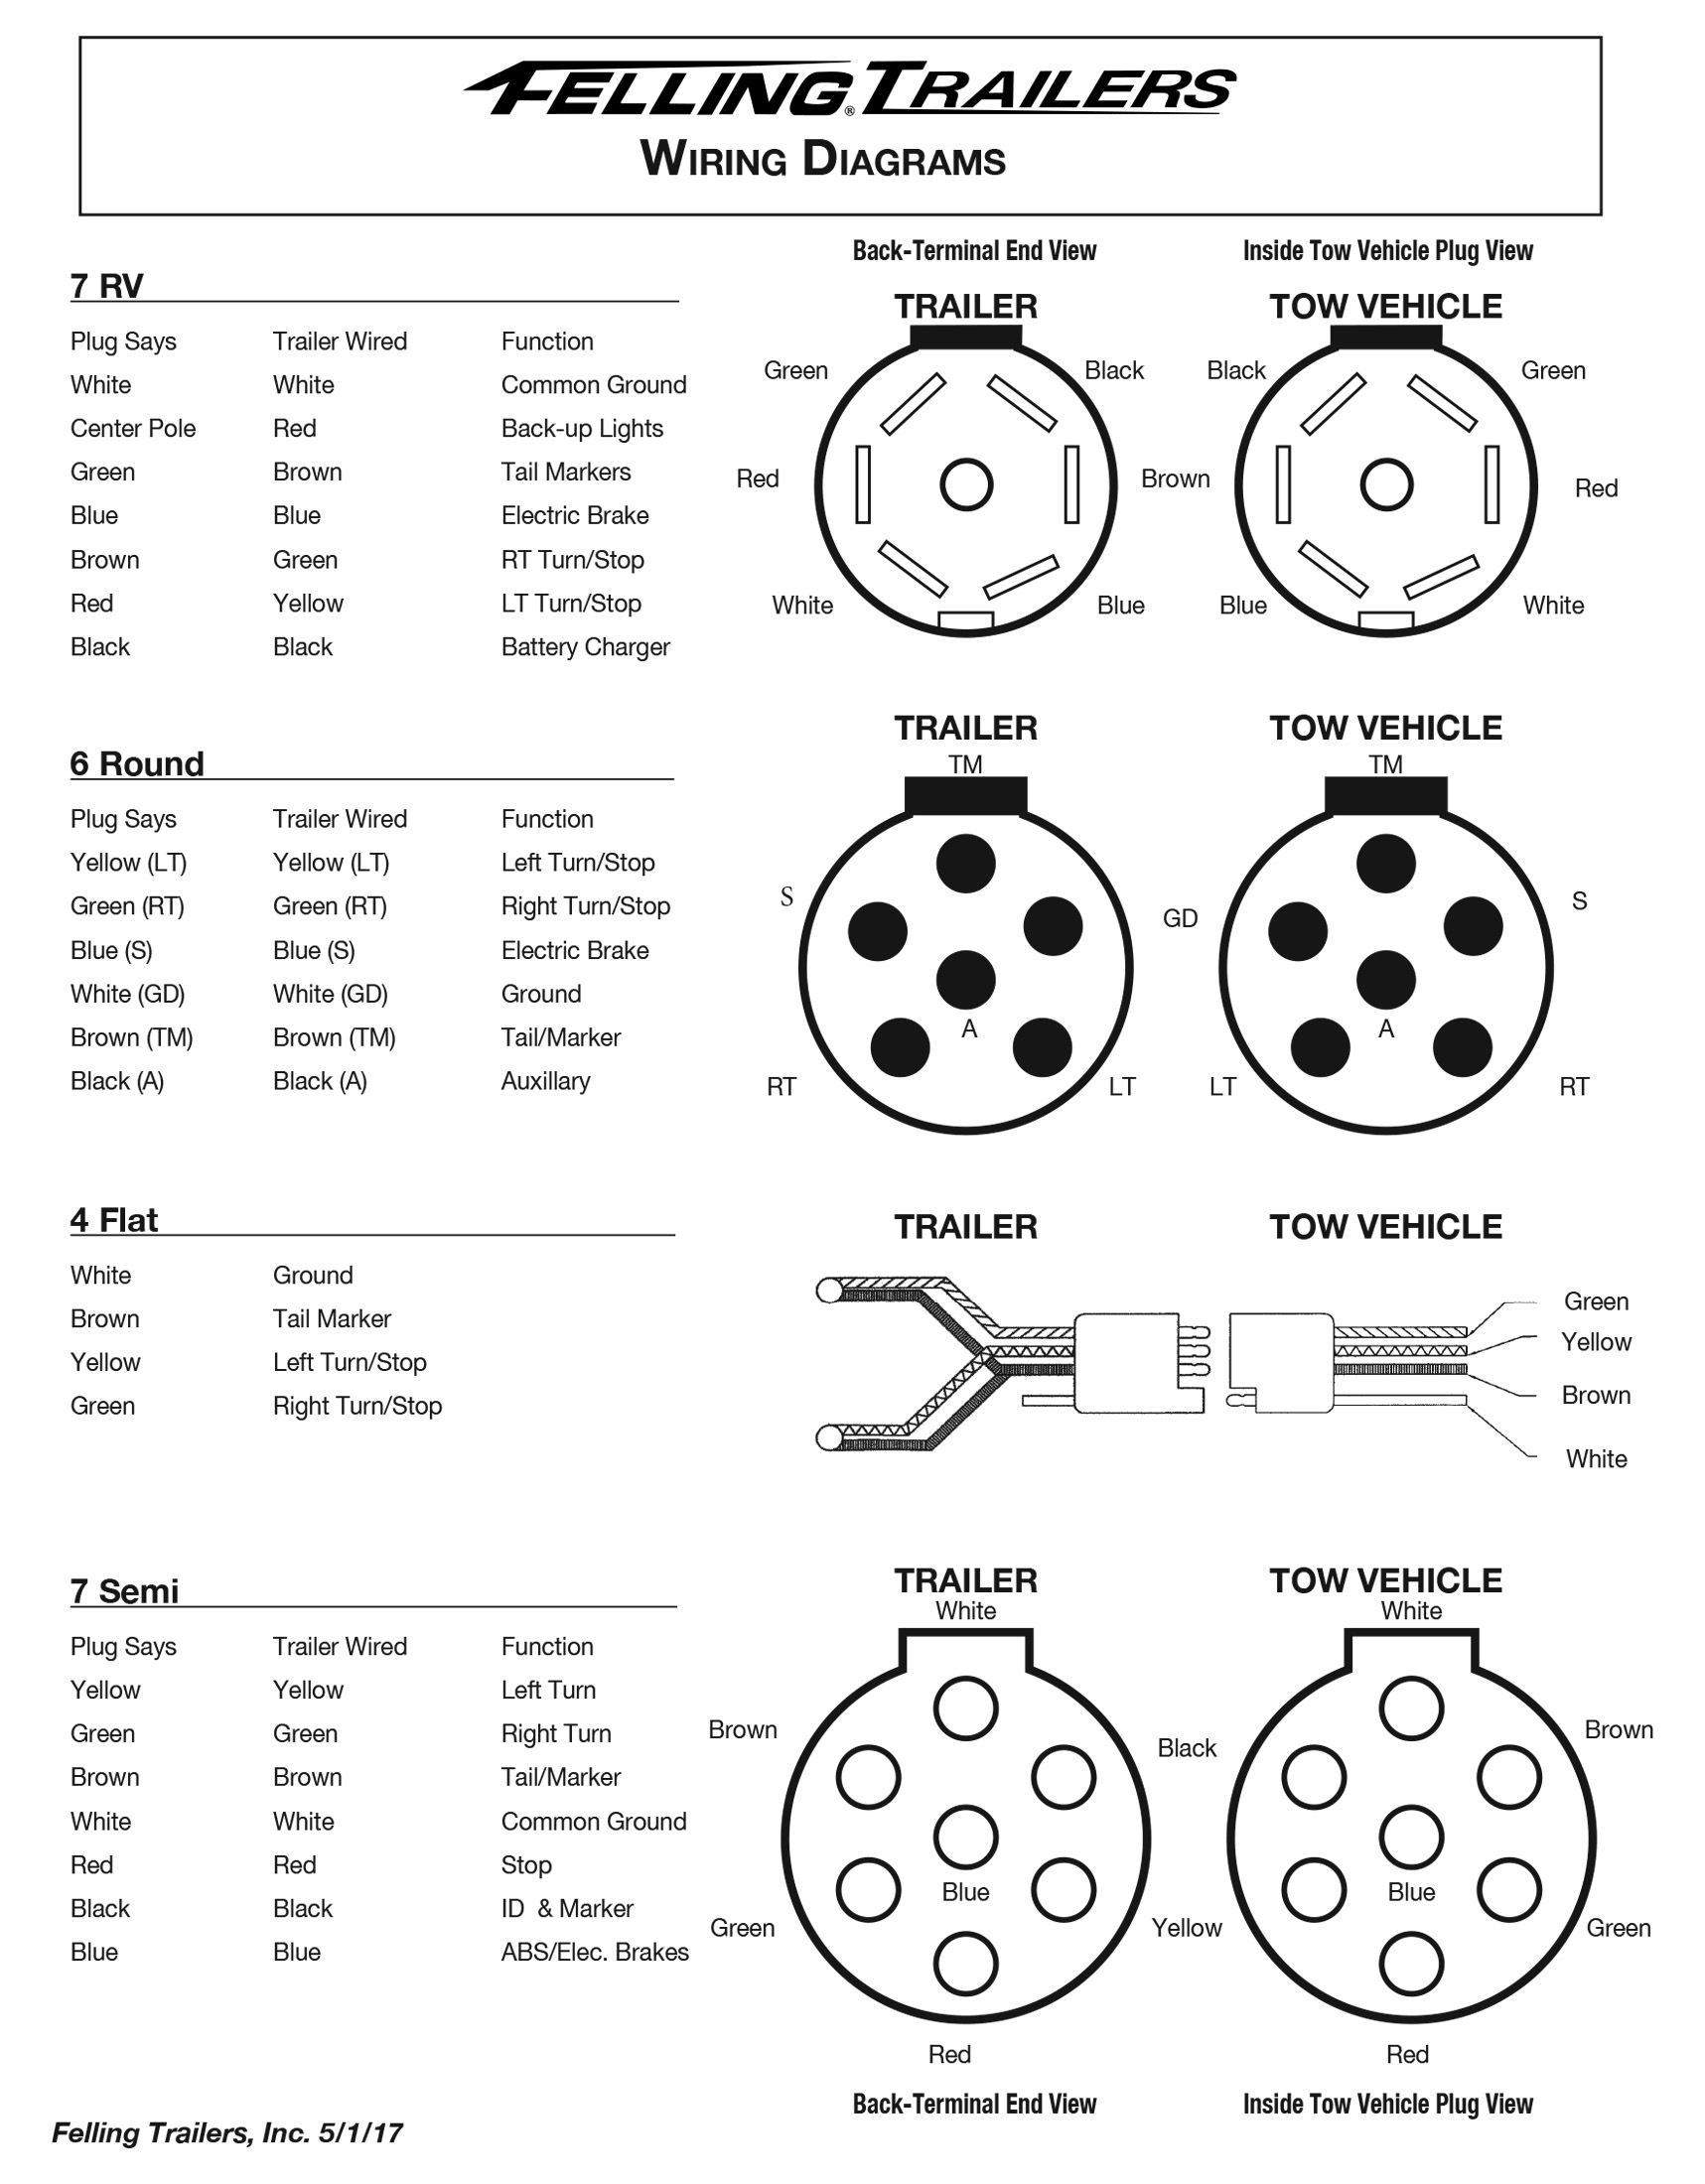 Service- Felling Trailers Wiring Diagrams, Wheel Toque - Flat 4 Trailer Wiring Diagram